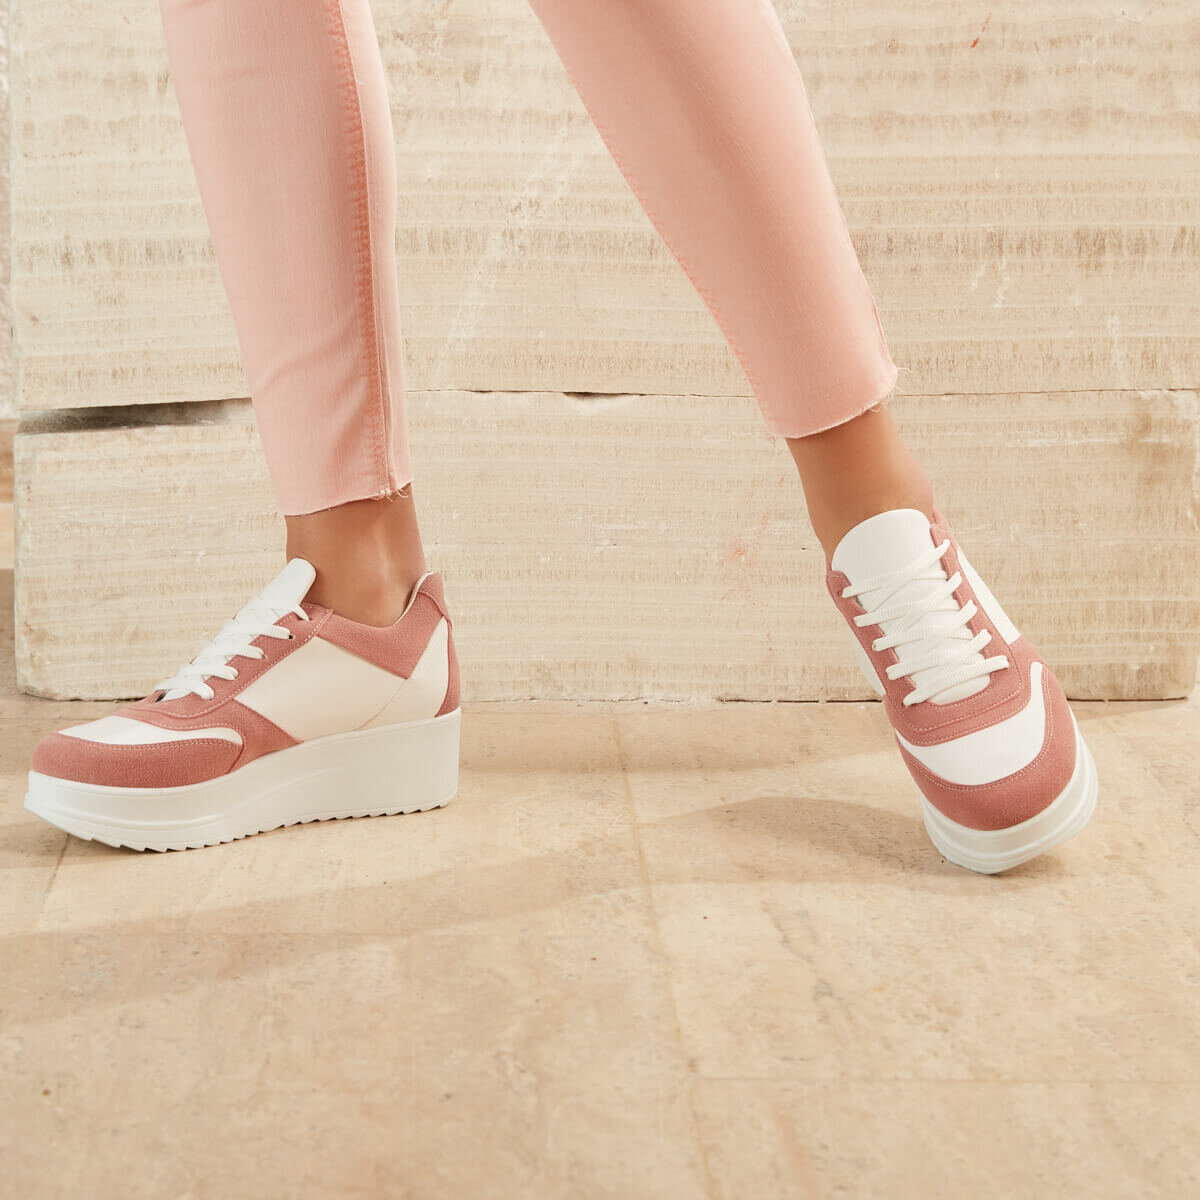 FLO Pink Women Sneaker Shoes Women Zapatos Mujer 2020 Fashion Women Sneakers Casual Shoes Tenis Feminino Comfy Shoes Ladies Lace Up Trainers BUTIGO SIMKA04Z